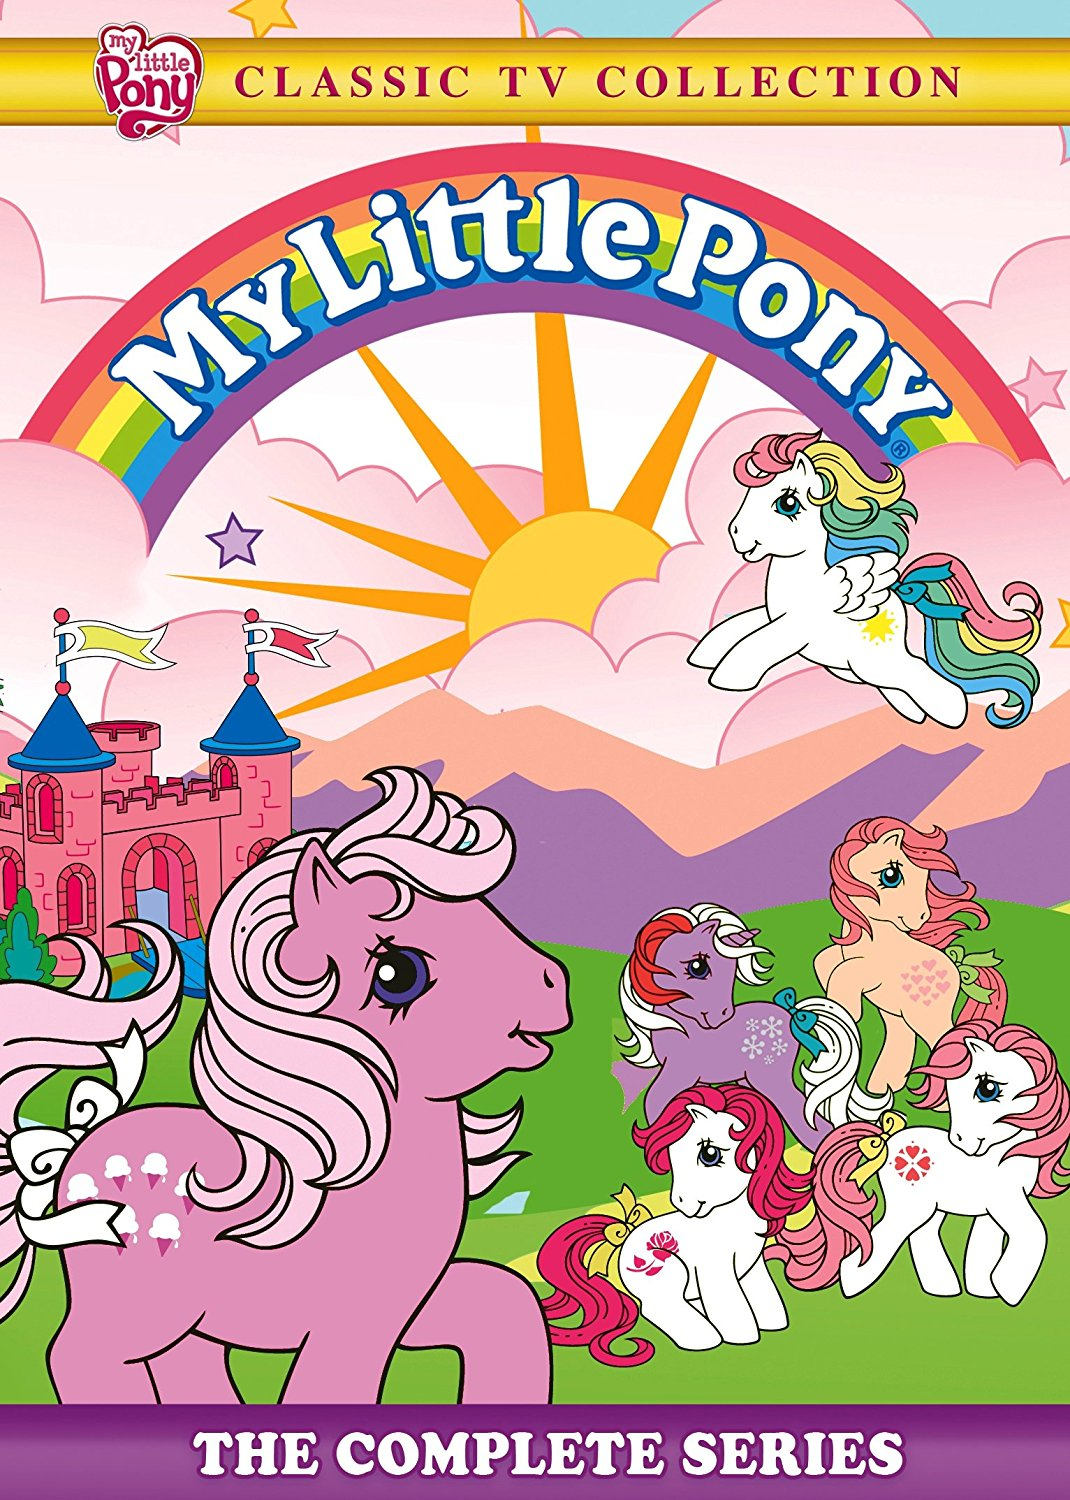 My Little Pony 'n Friends (1986)